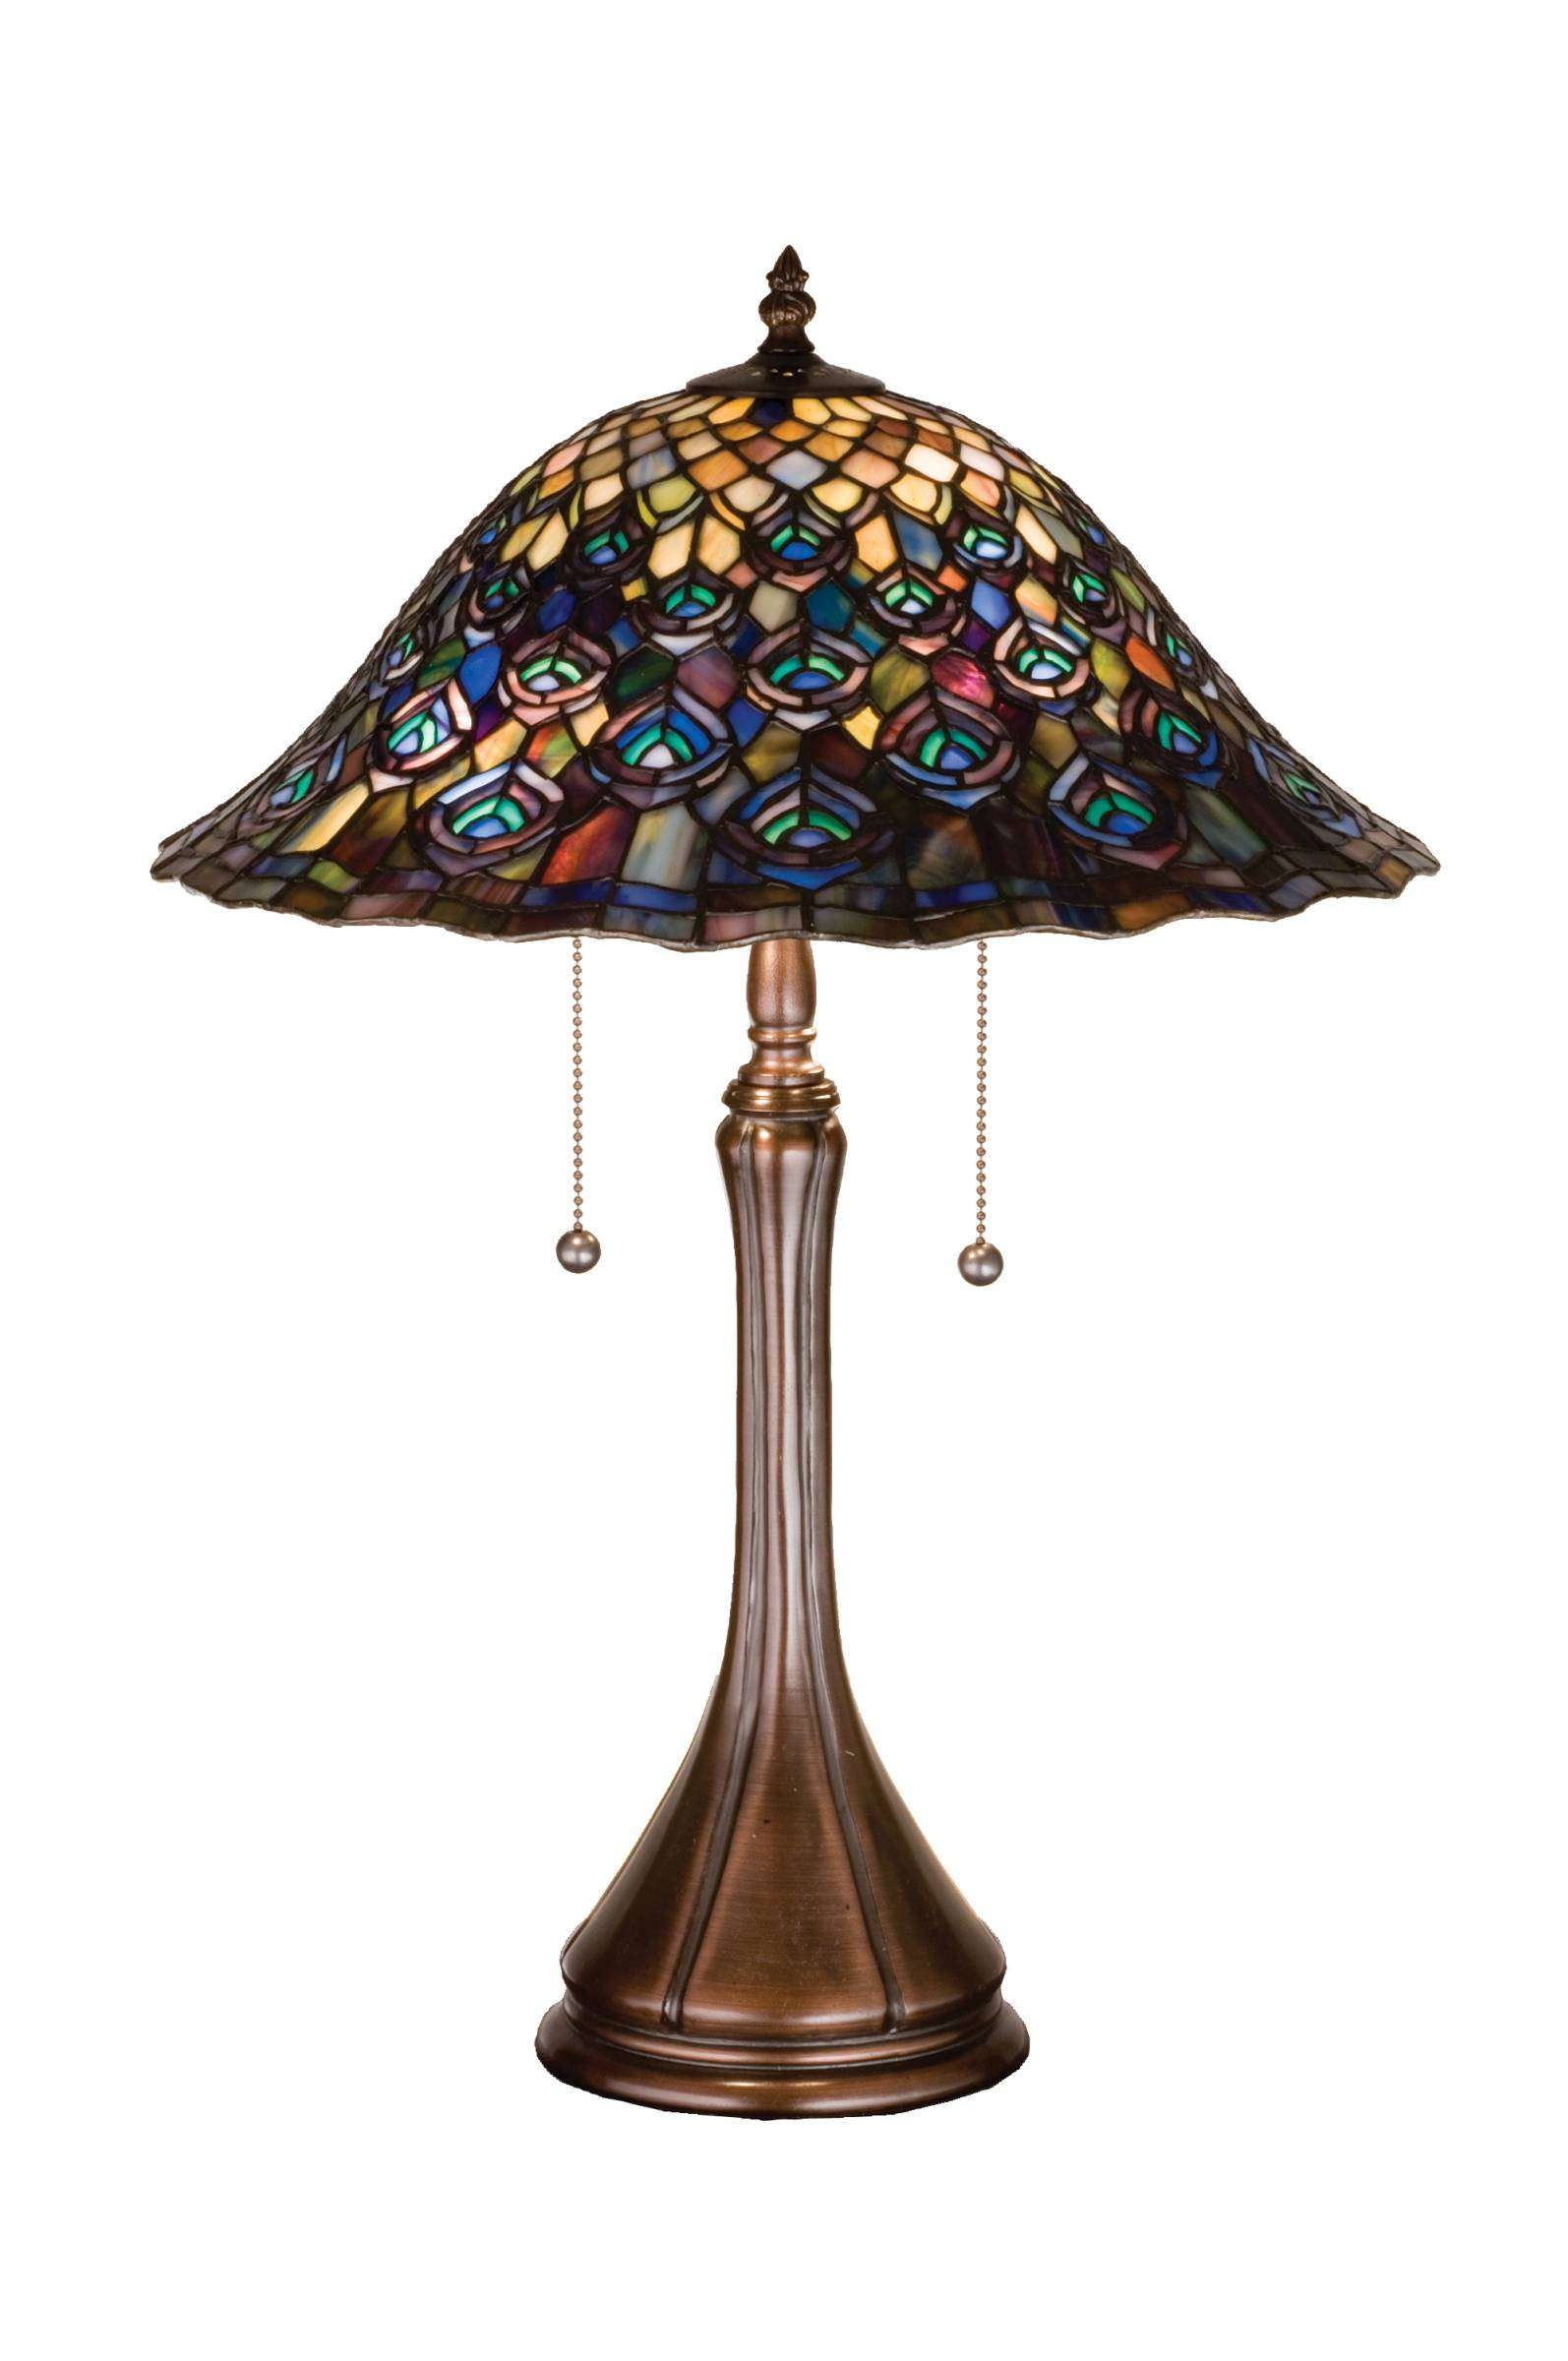 Meyda Tiffany 14574 Tiffany Peacock Feather Table Lamp in Copperfoil finish